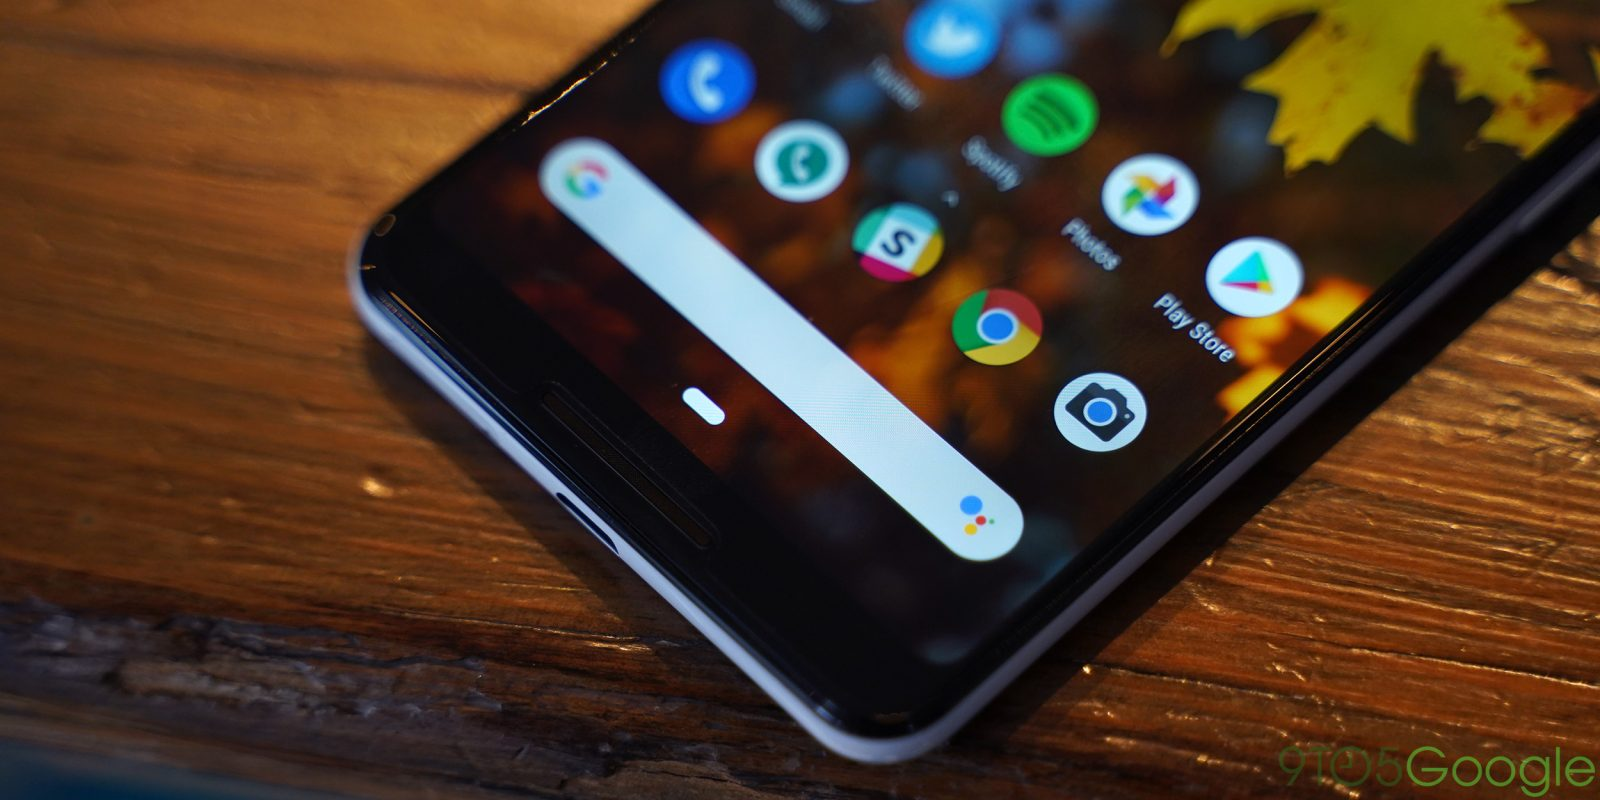 New 'Lab' poised to bring home screen Google Doodles to non-Pixel Android phones